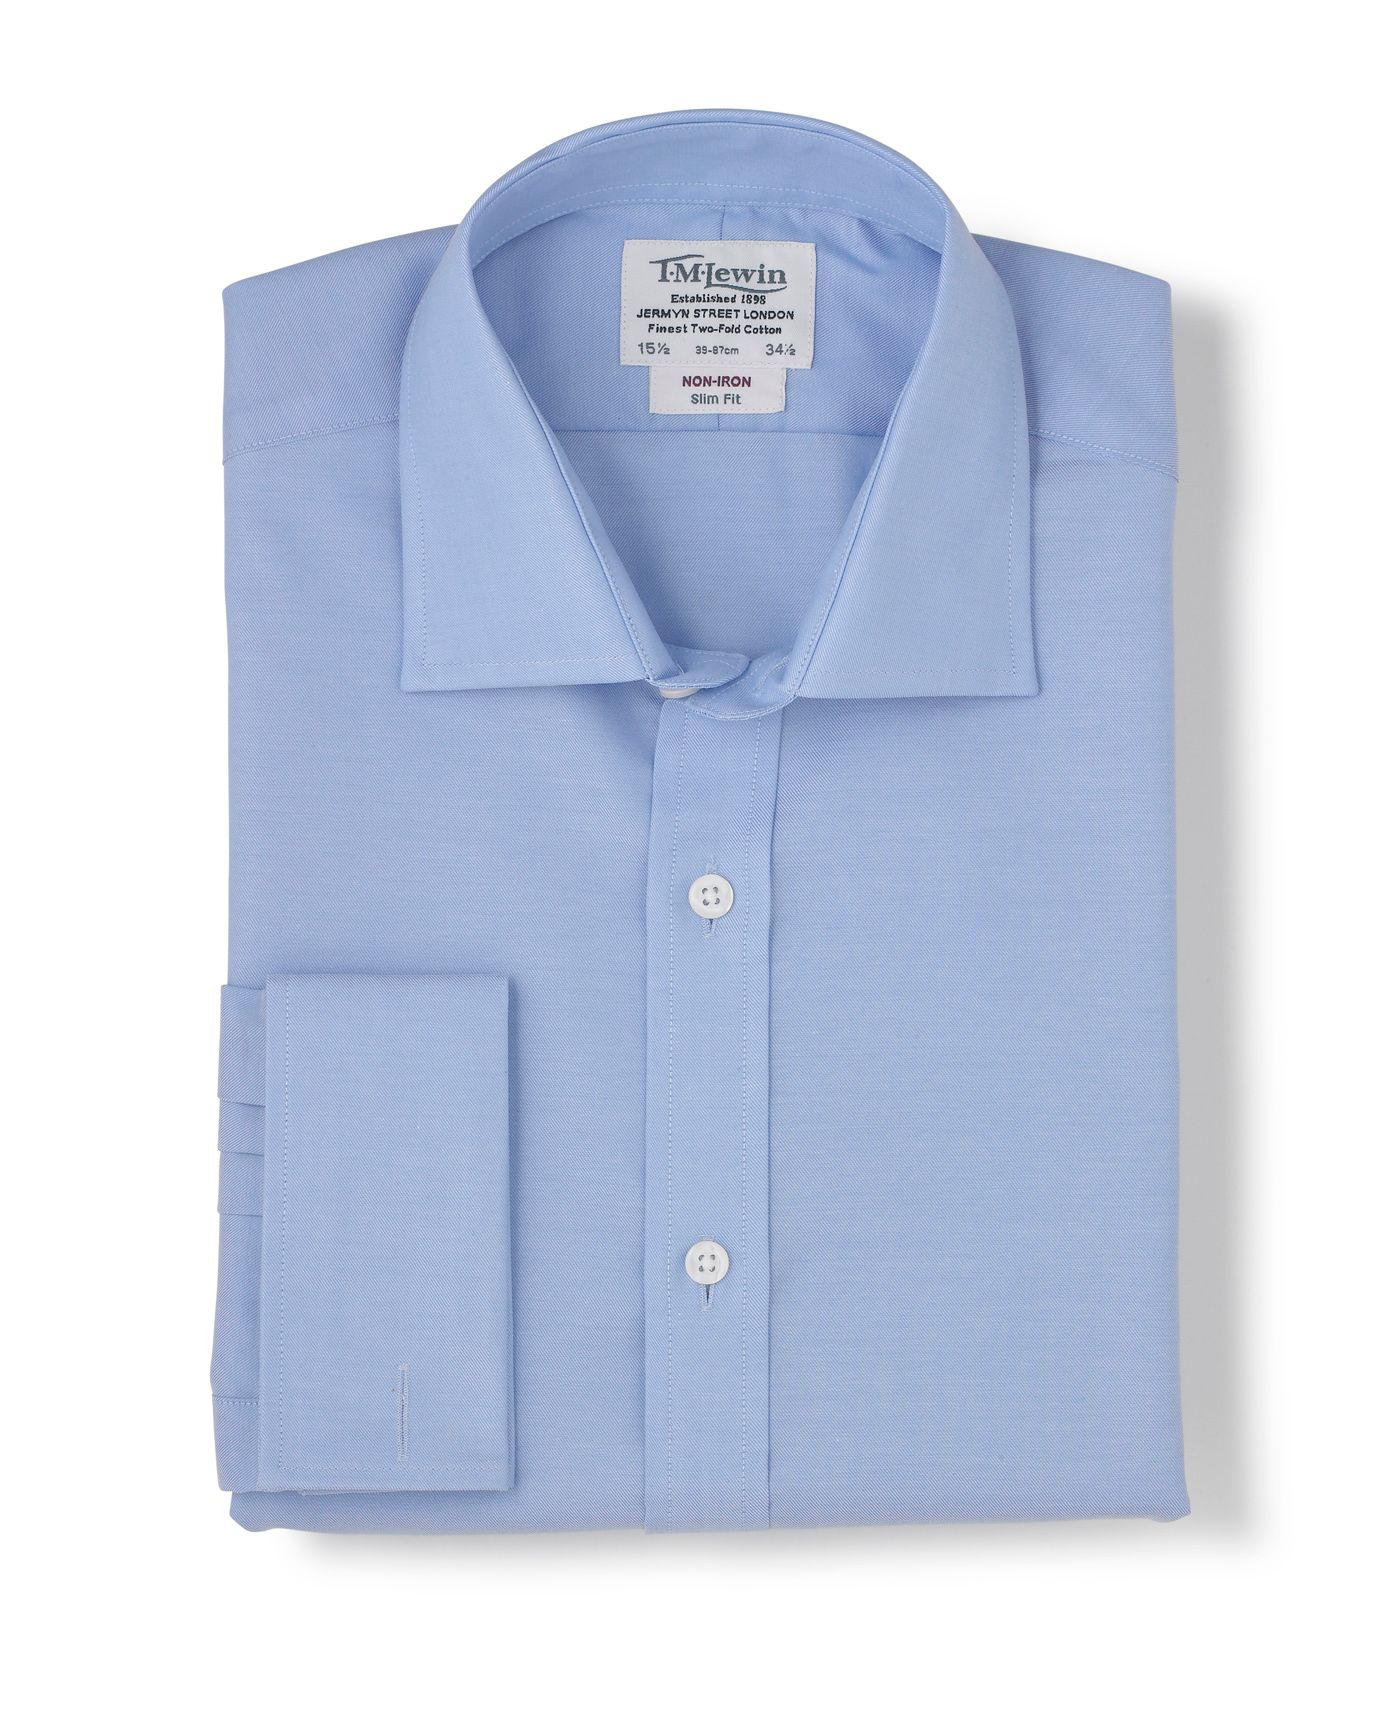 Blue non-iron shirt